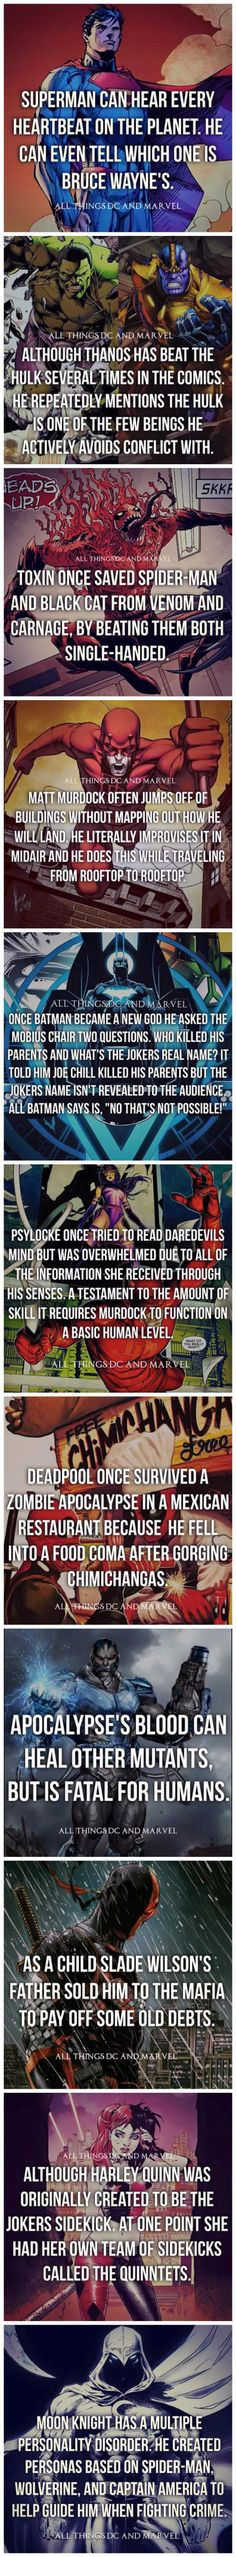 Cool superhero facts. Love stuff like this!